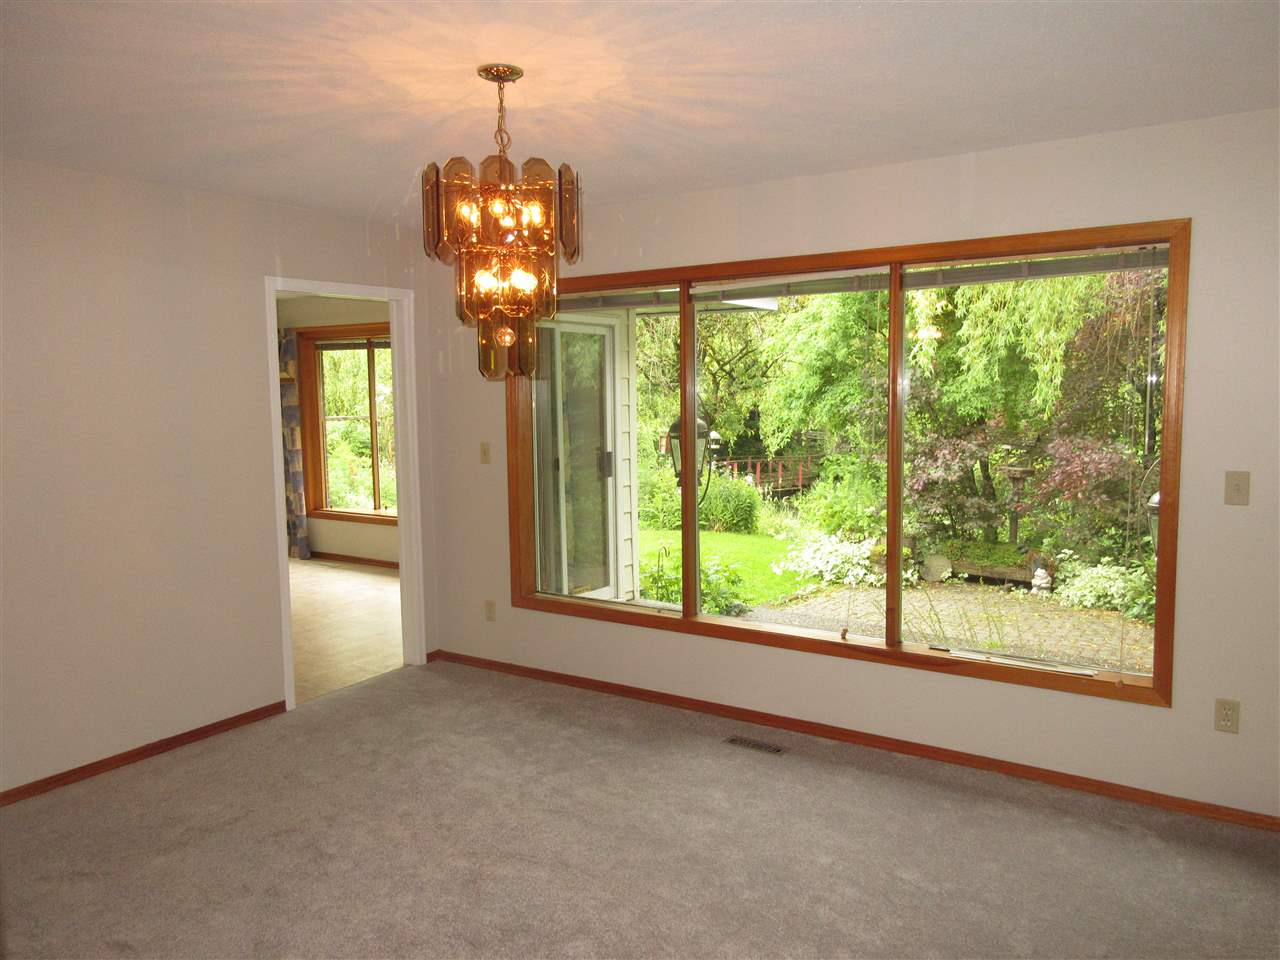 Photo 15: 45625 WORTHINGTON Place in Sardis: Sardis West Vedder Rd House for sale : MLS(r) # R2176017